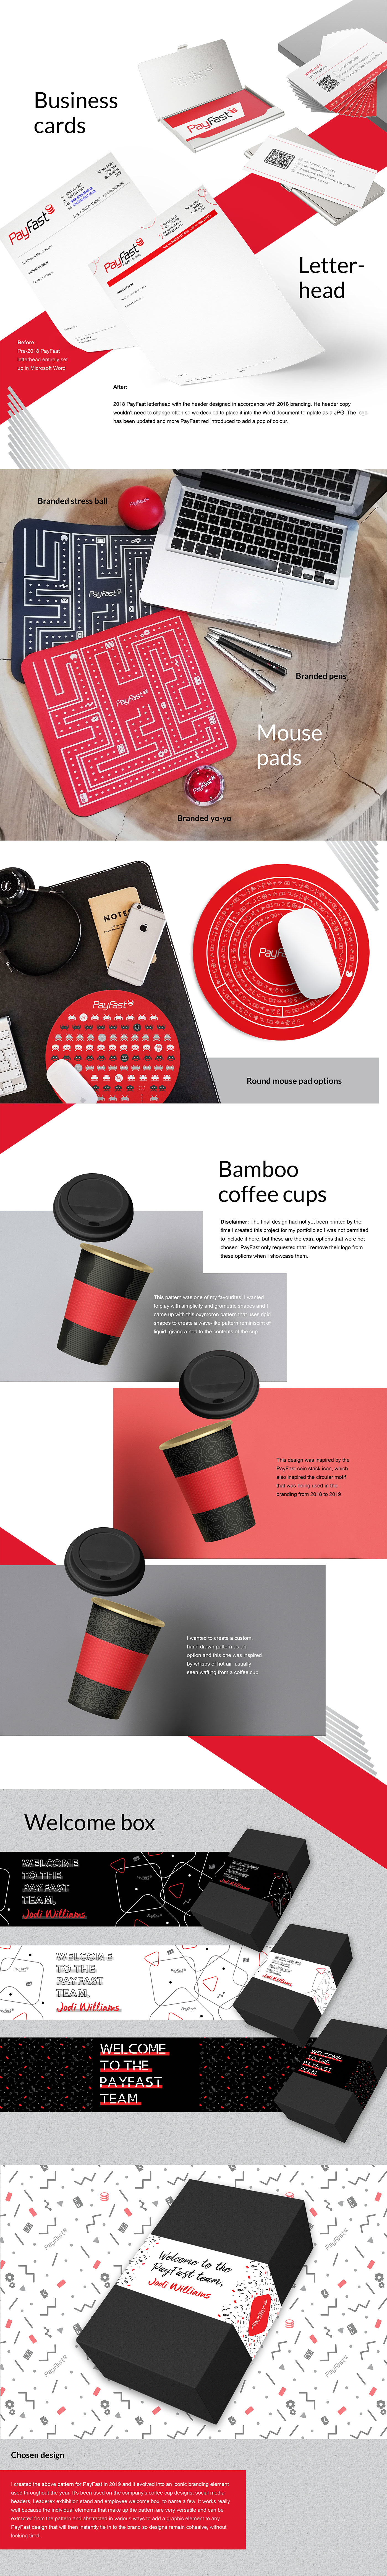 Fintech,branding ,graphic design ,Layout Design,letterhead,Business Cards,Packaging,coffee cup,mouse pad,box